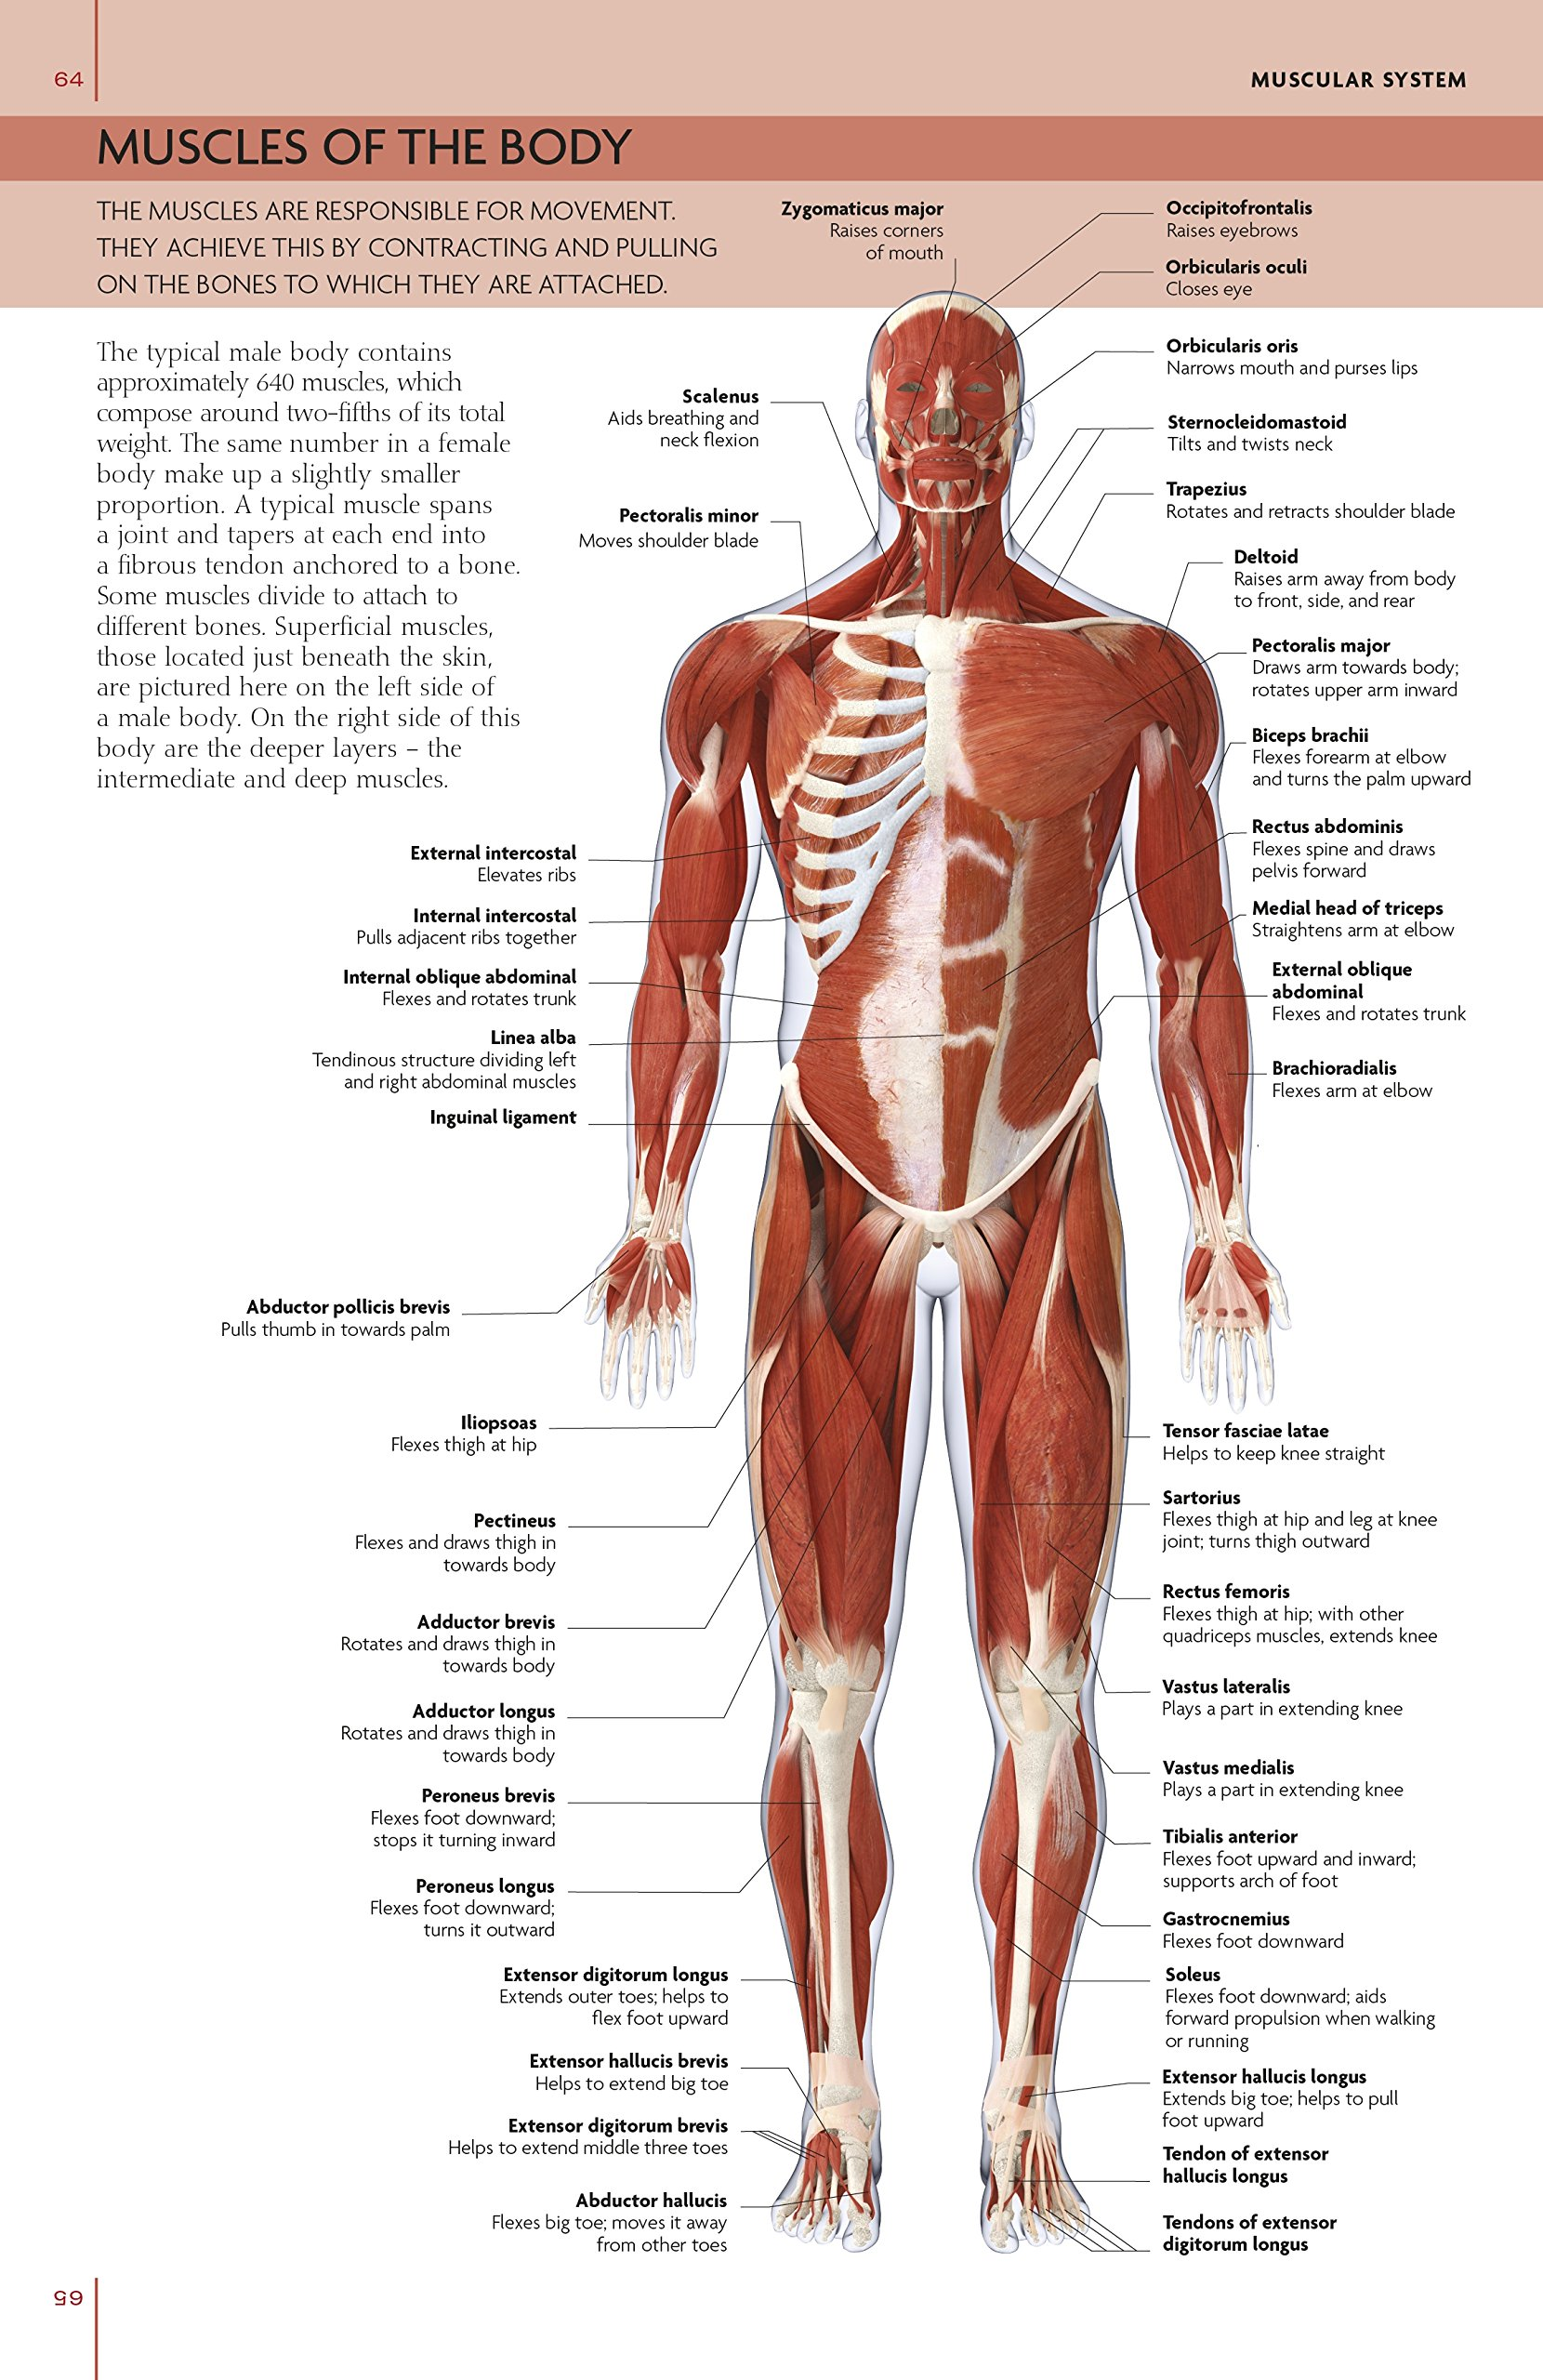 The Concise Human Body Book: DK: 9781405340410: Amazon.com: Books